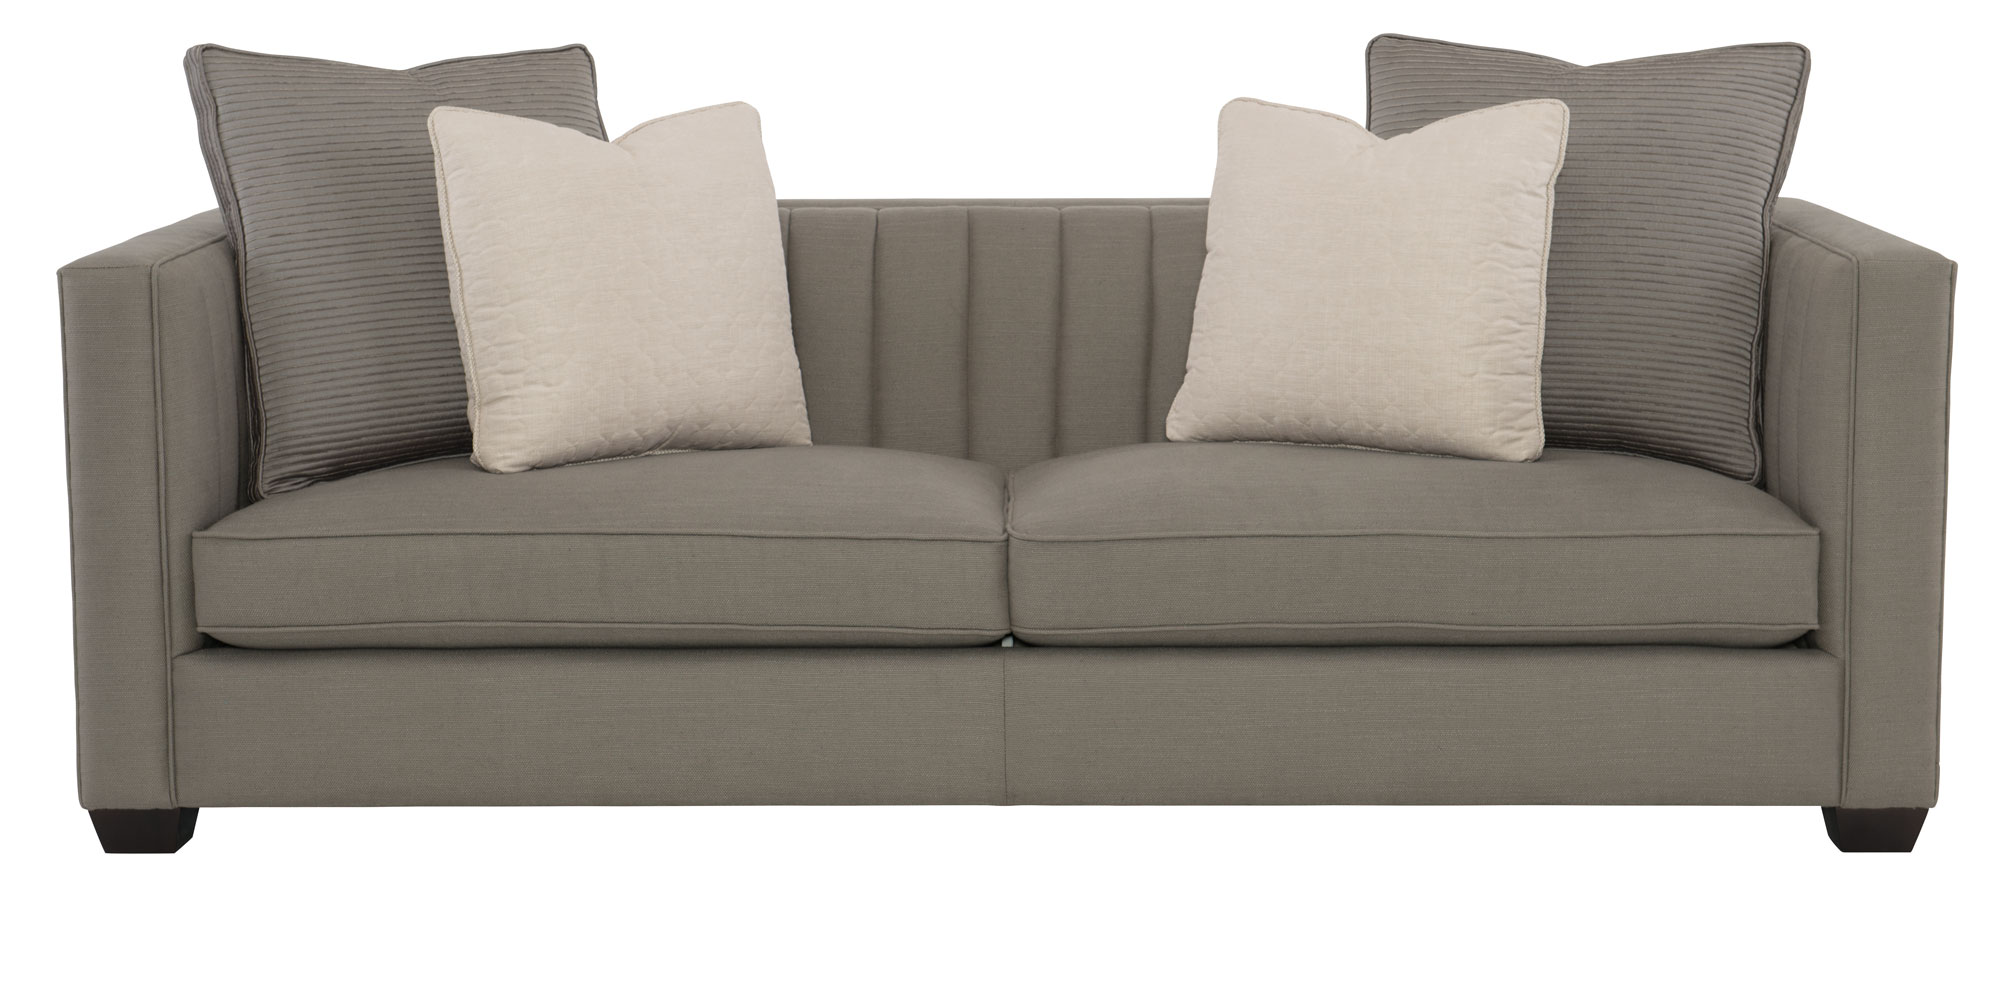 bernhardt sofa leather and fabric modern sofas couches |